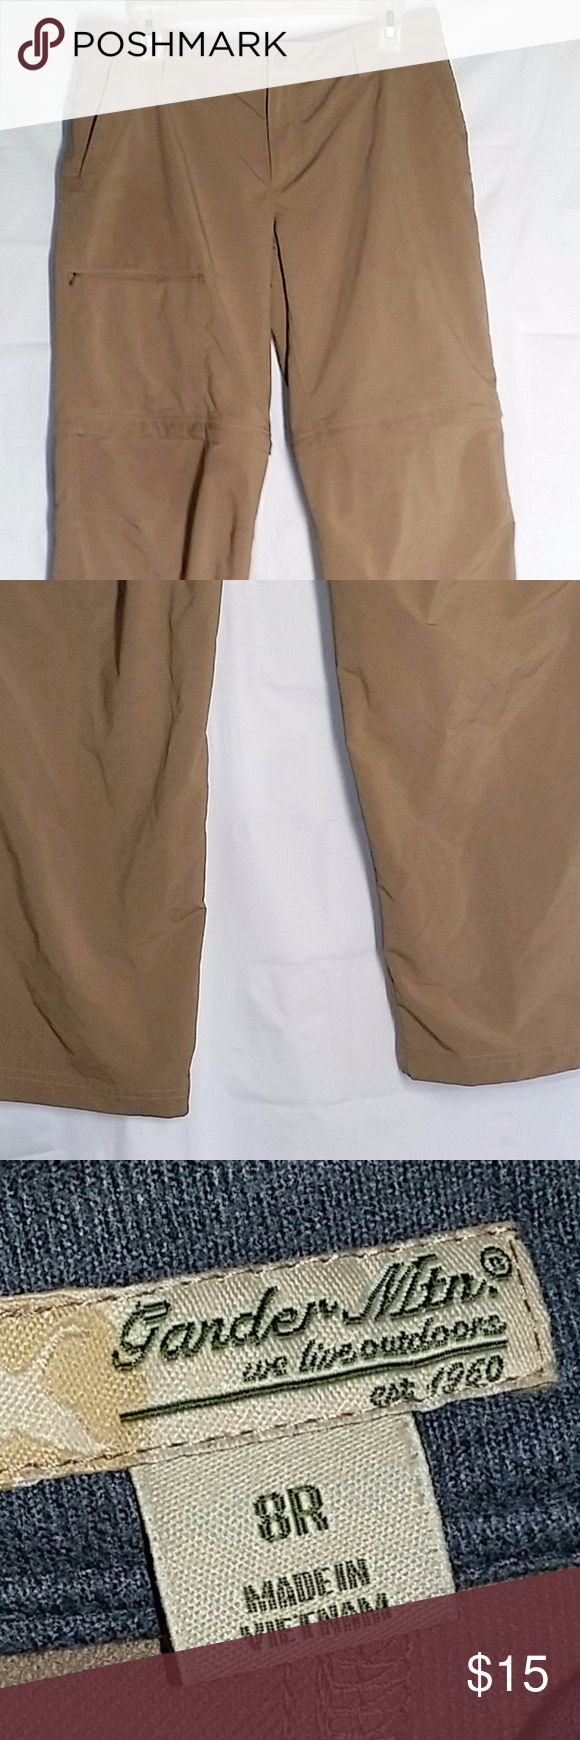 "Gander Mountain Pants 8 Khaki Convertible Cargo Gander Mountain Women's Pants 8R Khaki Convertible Cargo Pockets Beige Outdoor Polyester & spandex Convertible to shorts Approx waist 32.5"", rise 9 and inseam 30""   Gently used Gander Mountain Pants"